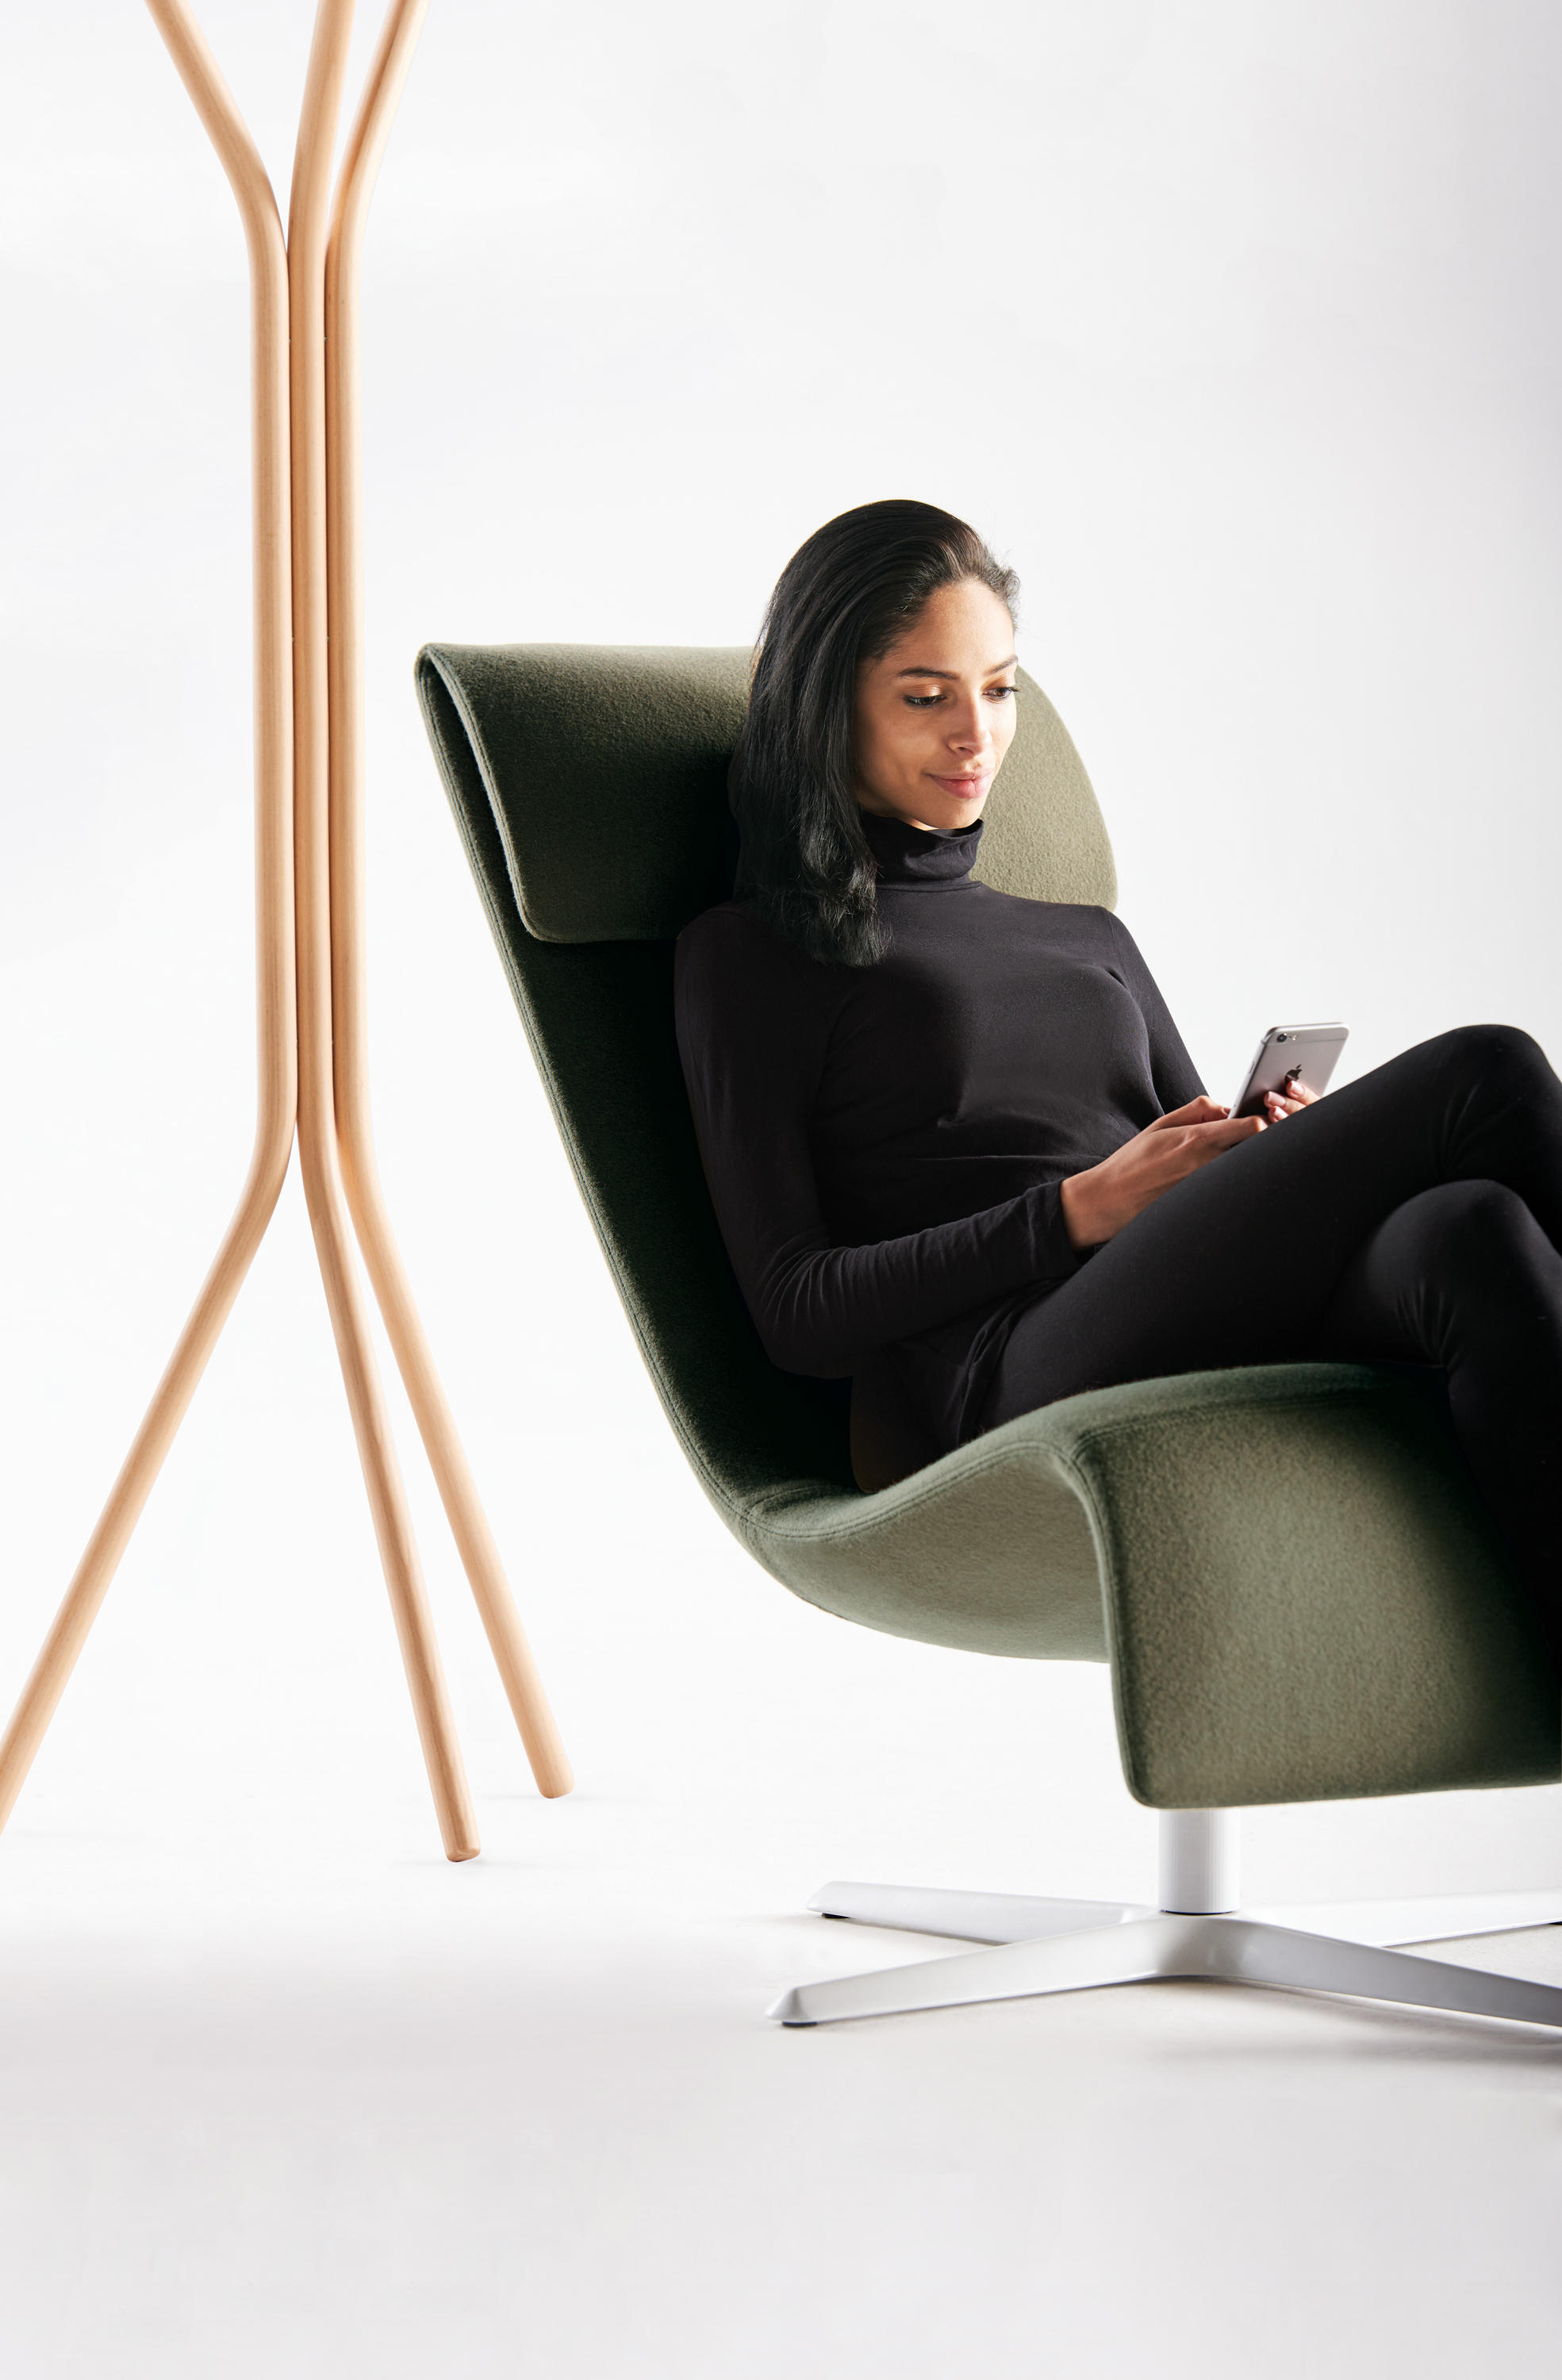 Marvelous Zones Solo Lounge Chair Architonic Caraccident5 Cool Chair Designs And Ideas Caraccident5Info